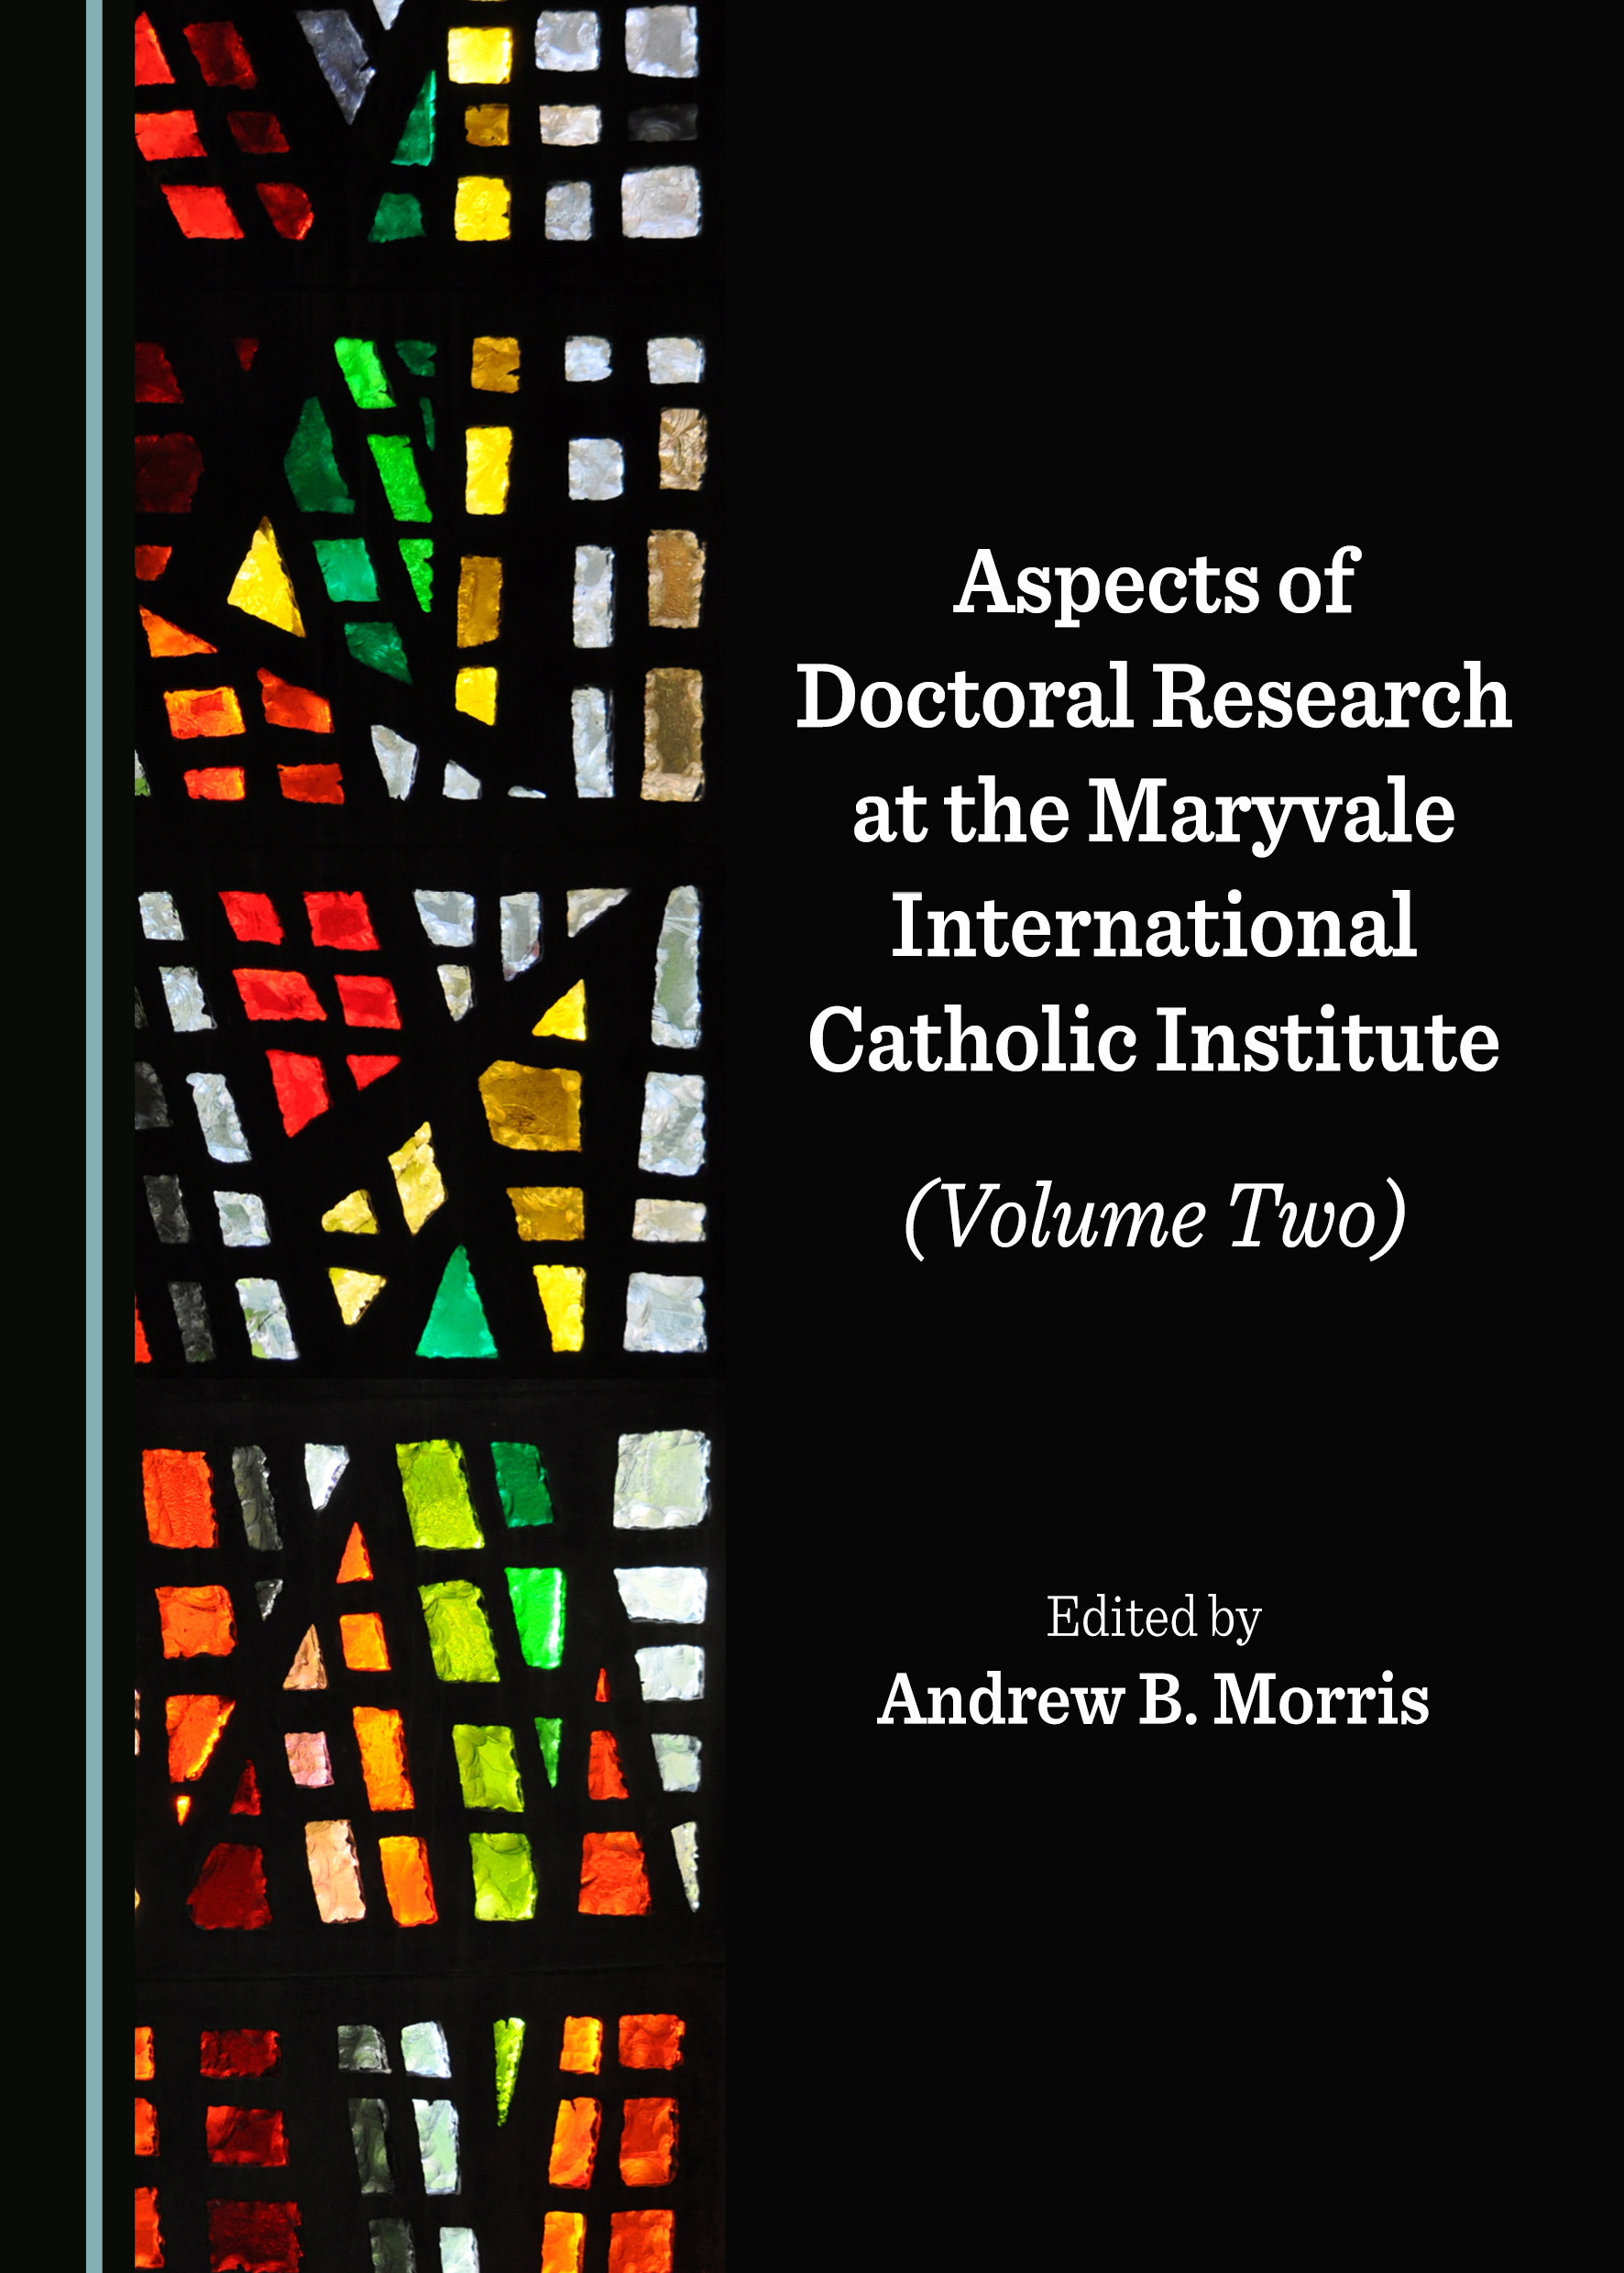 Aspects of Doctoral Research at the Maryvale International Catholic Institute (Volume Two)